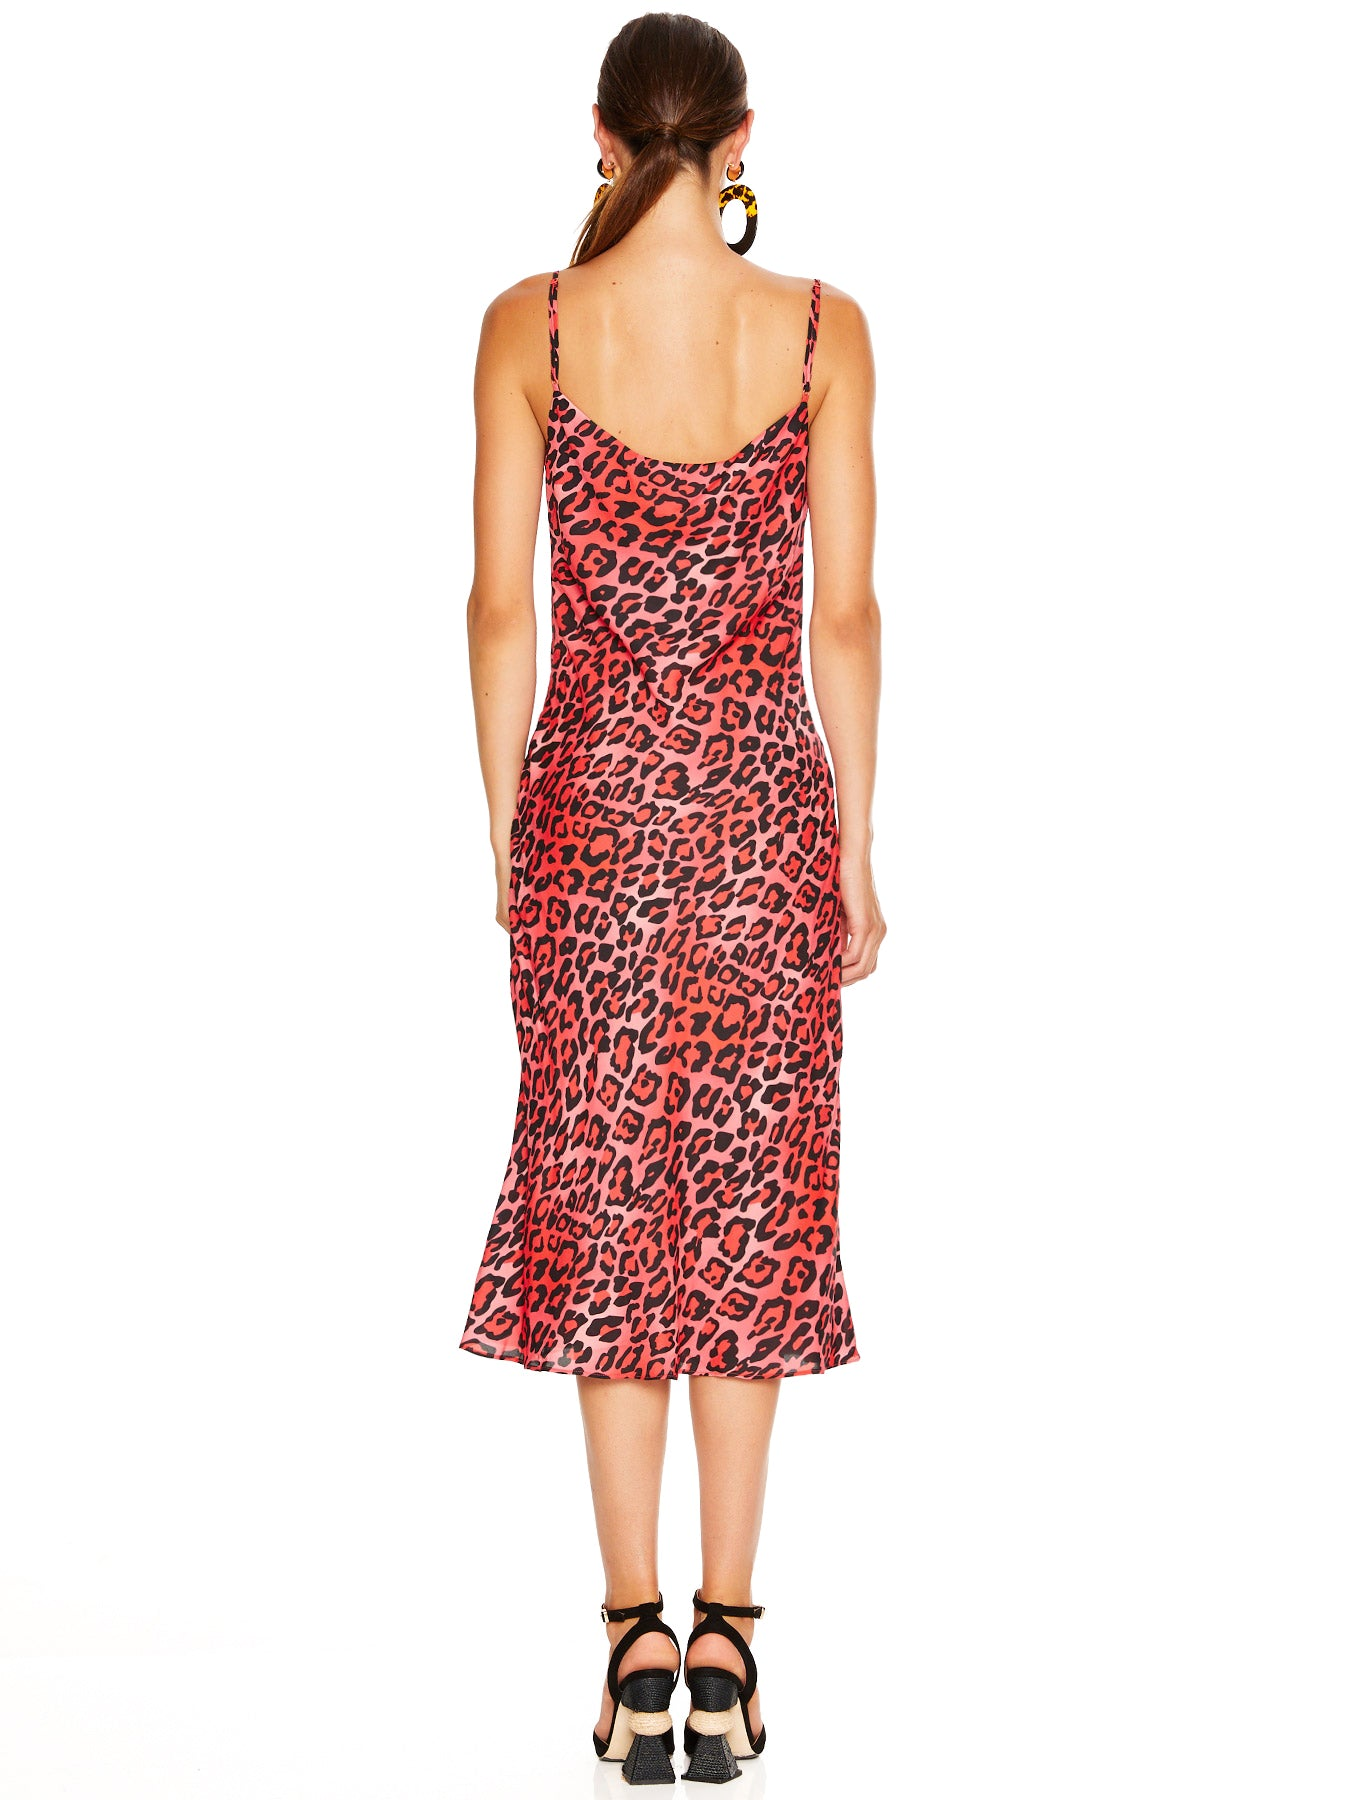 PARTY ANIMAL MIDI DRESS